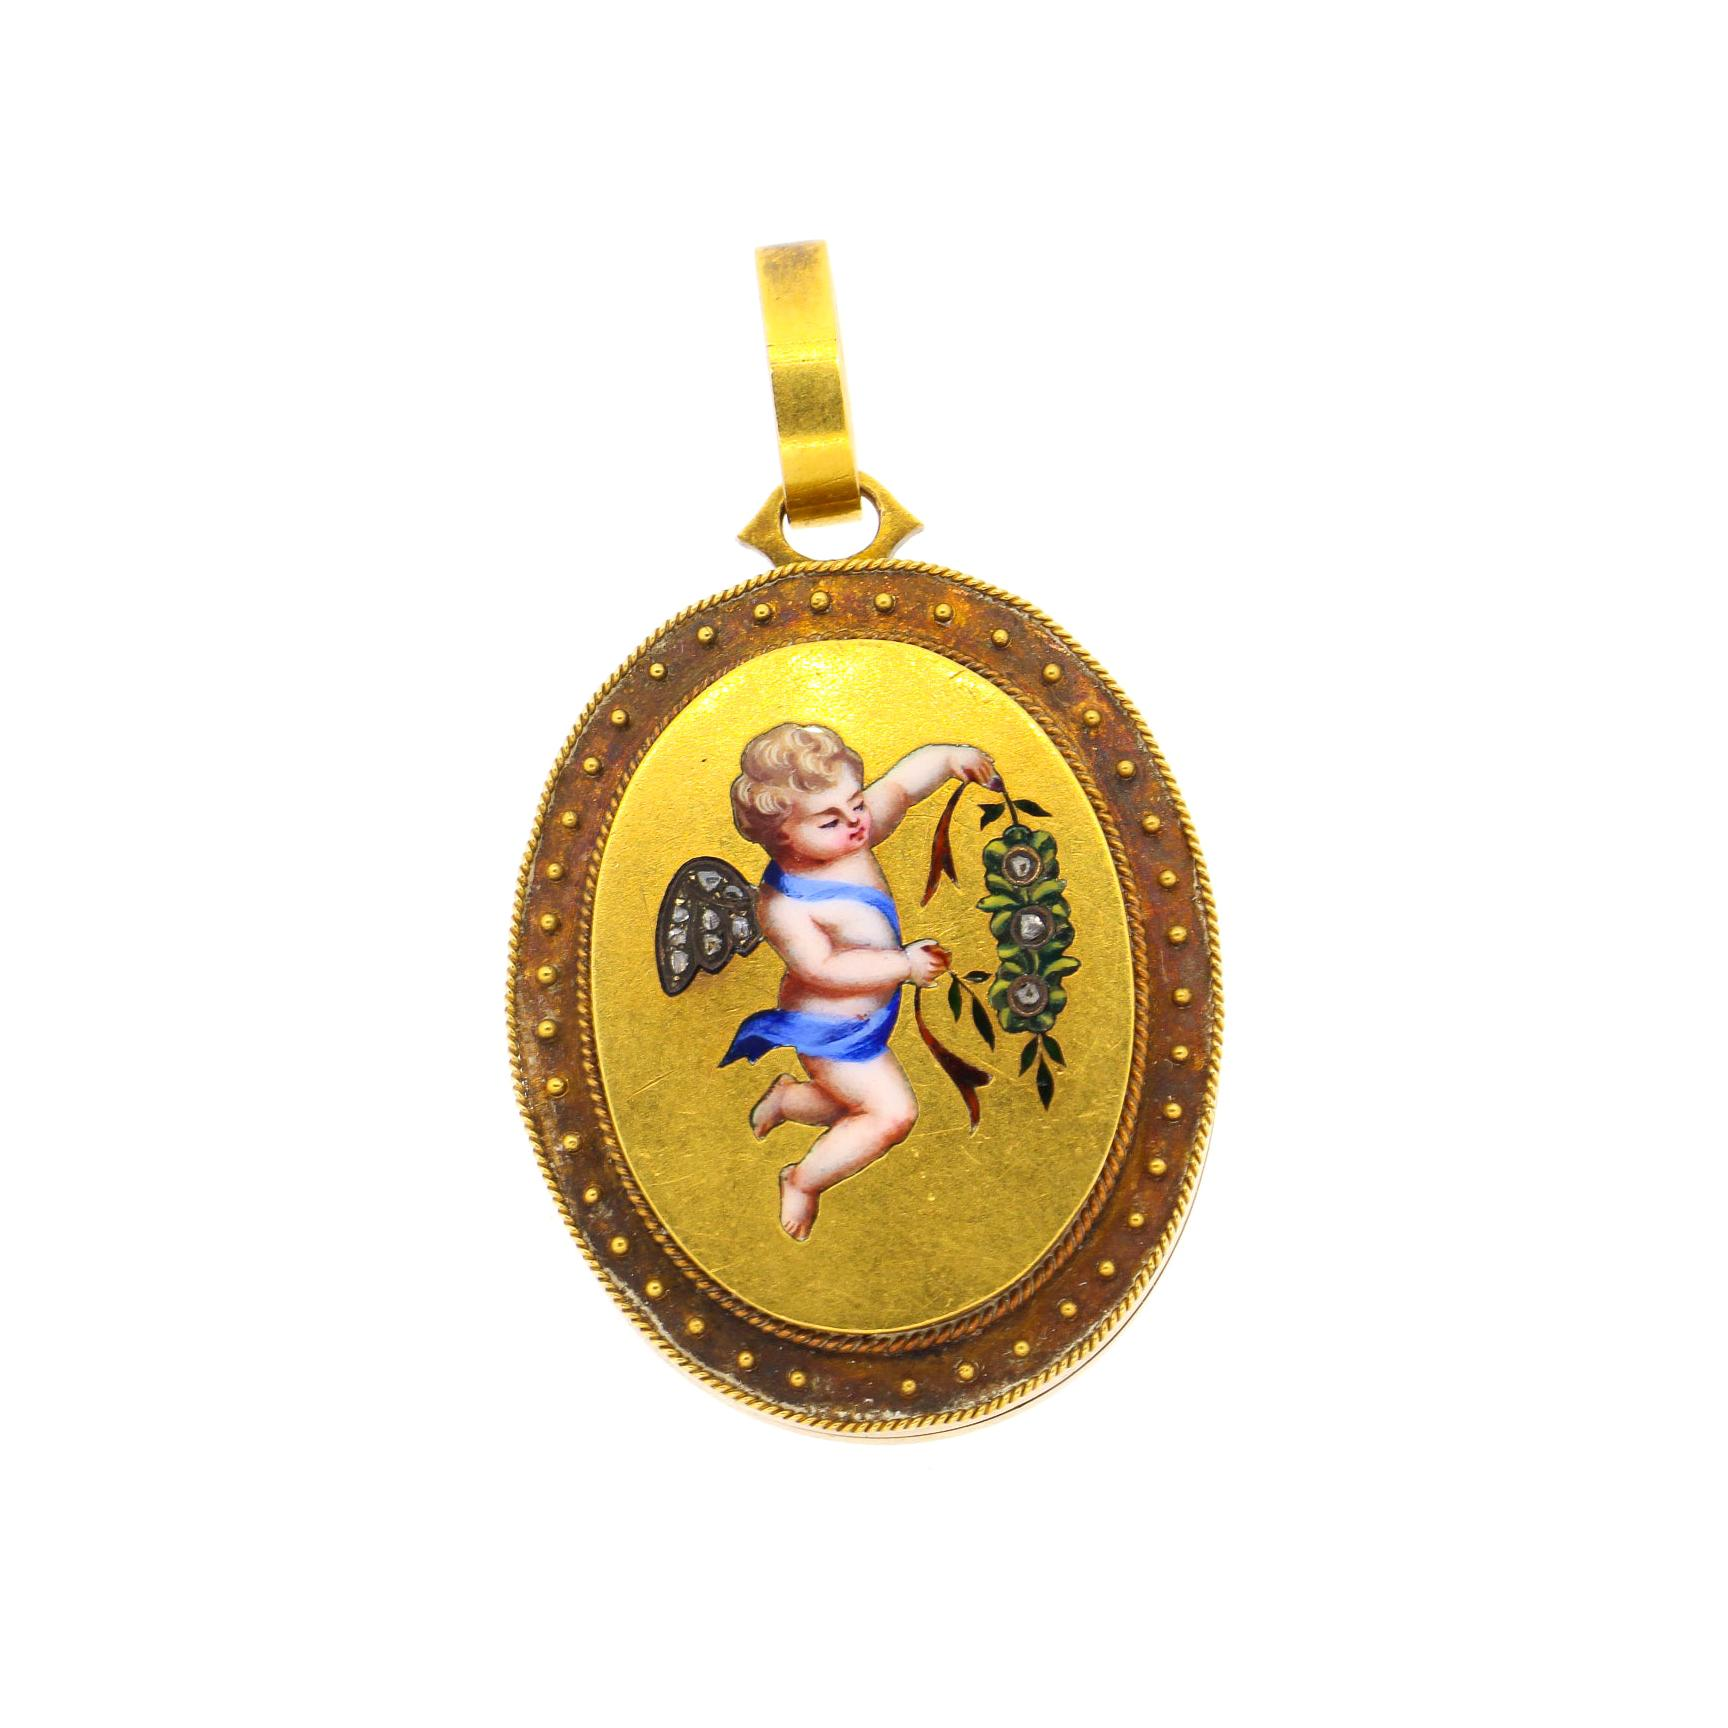 Antique Victorian 18 Karat Gold Enamel Rose Cut Diamond Cherub Locket